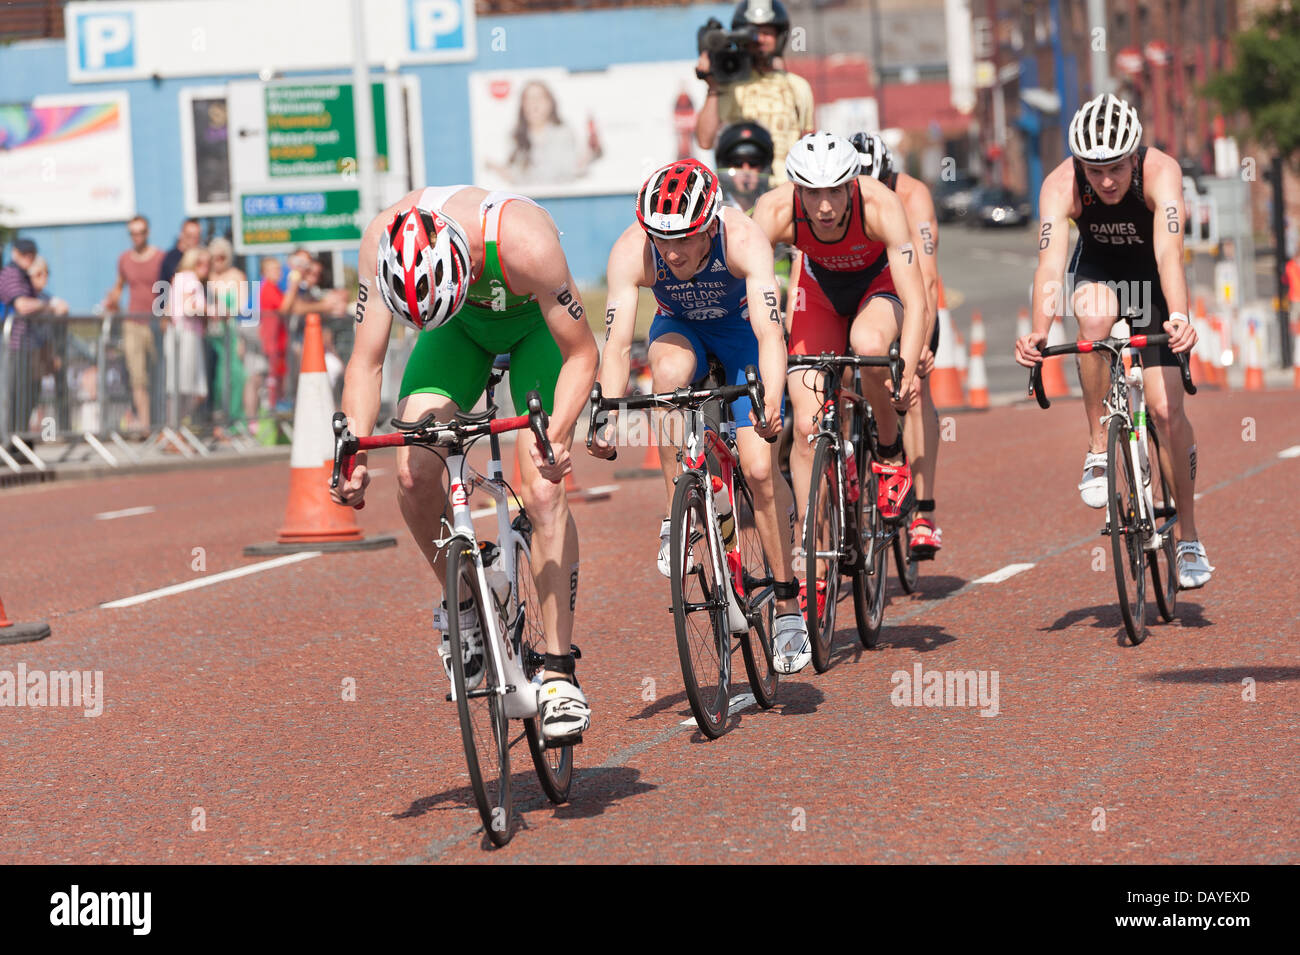 Men Elite Sprint Distance Triathlon supreme athletes super fit and fast drafting on the bike cycle leg cycling fast Stock Photo